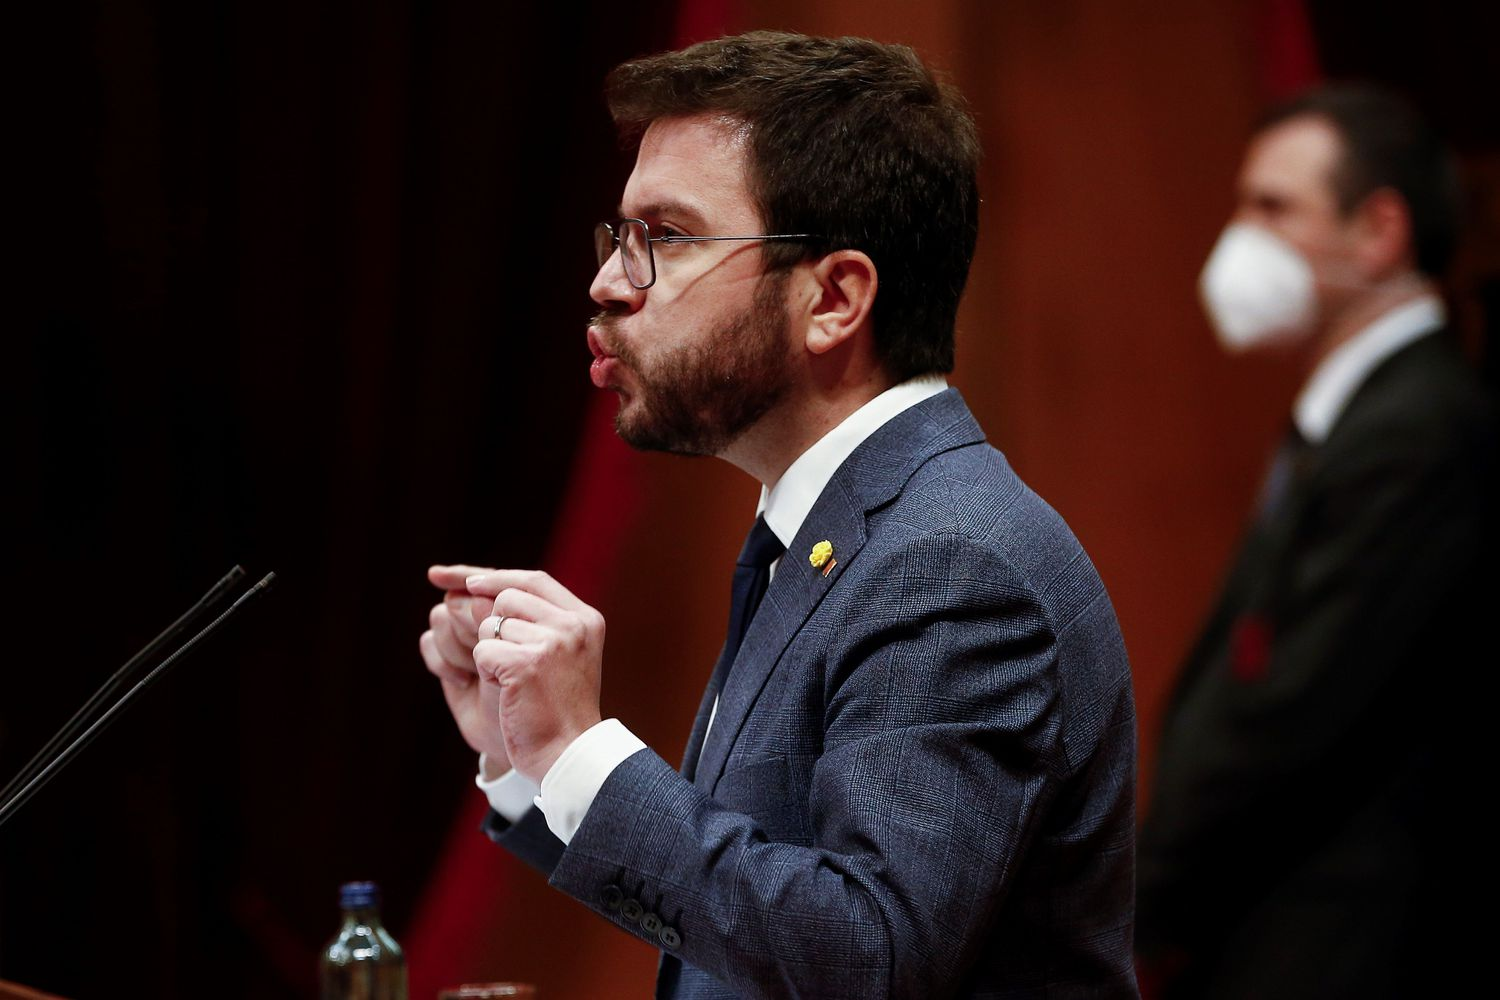 Justice Maintains The Electoral Appointment In Catalonia